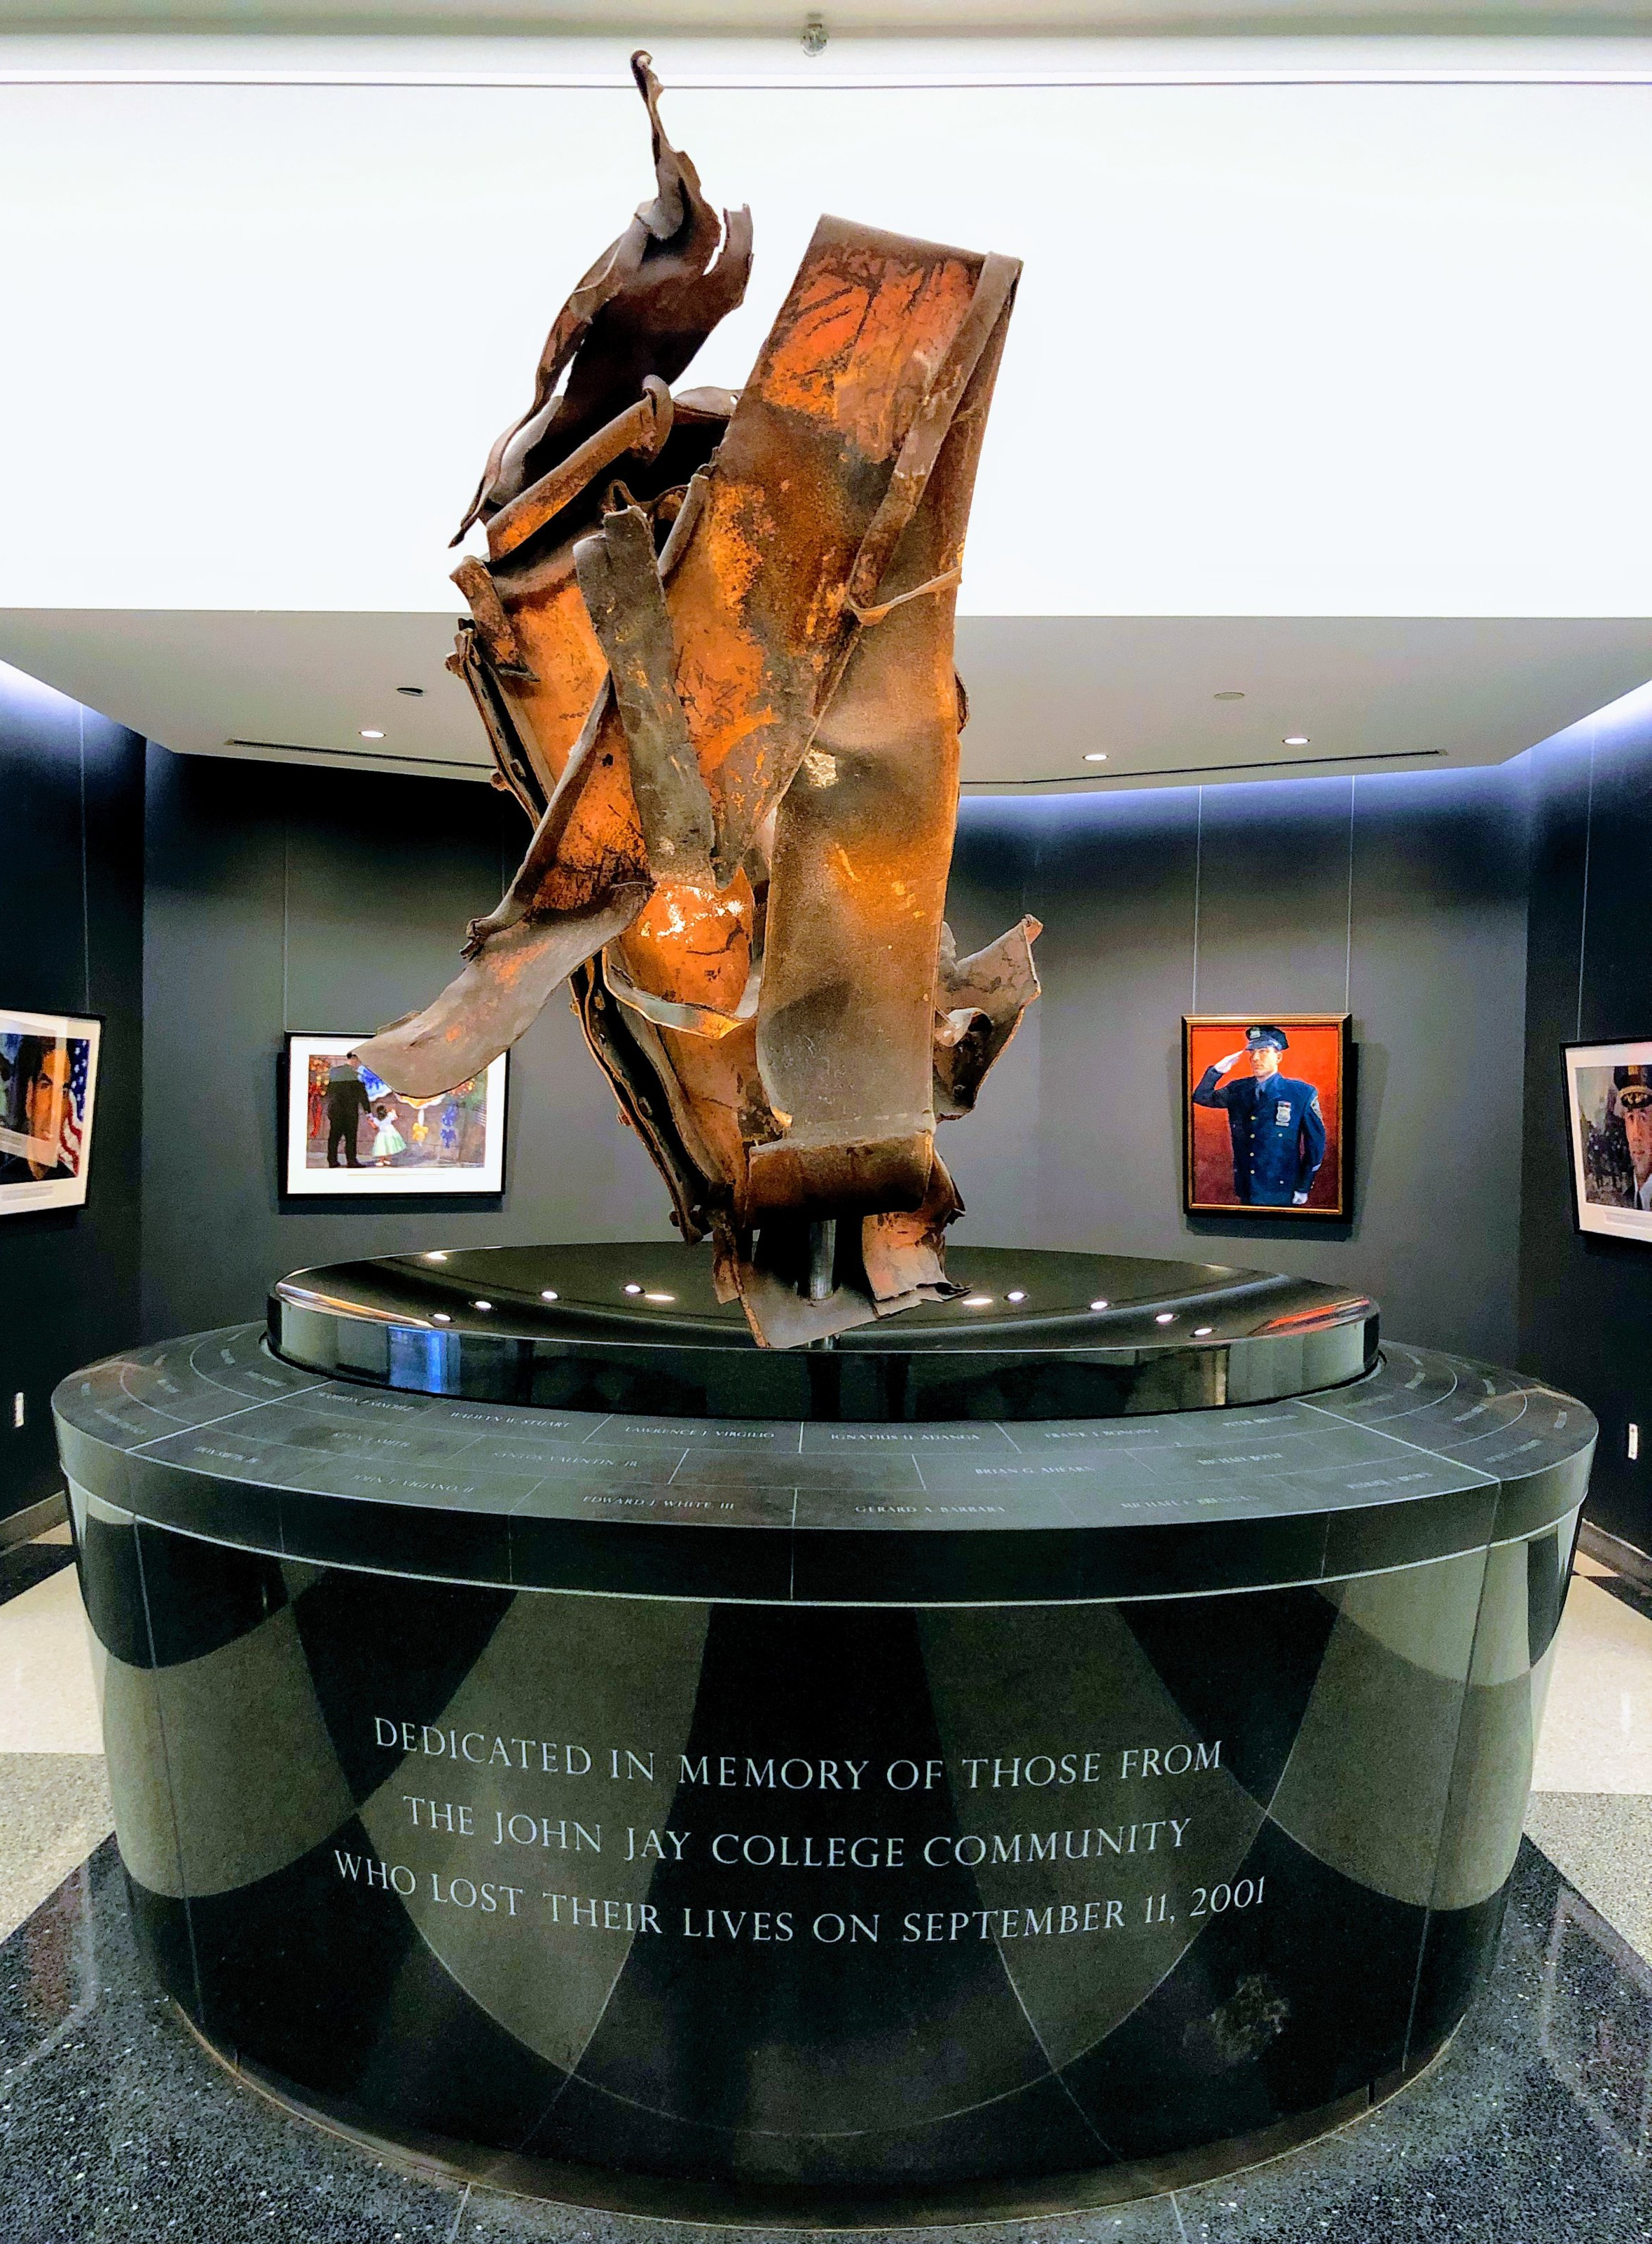 9/11 Memorial at John Jay College